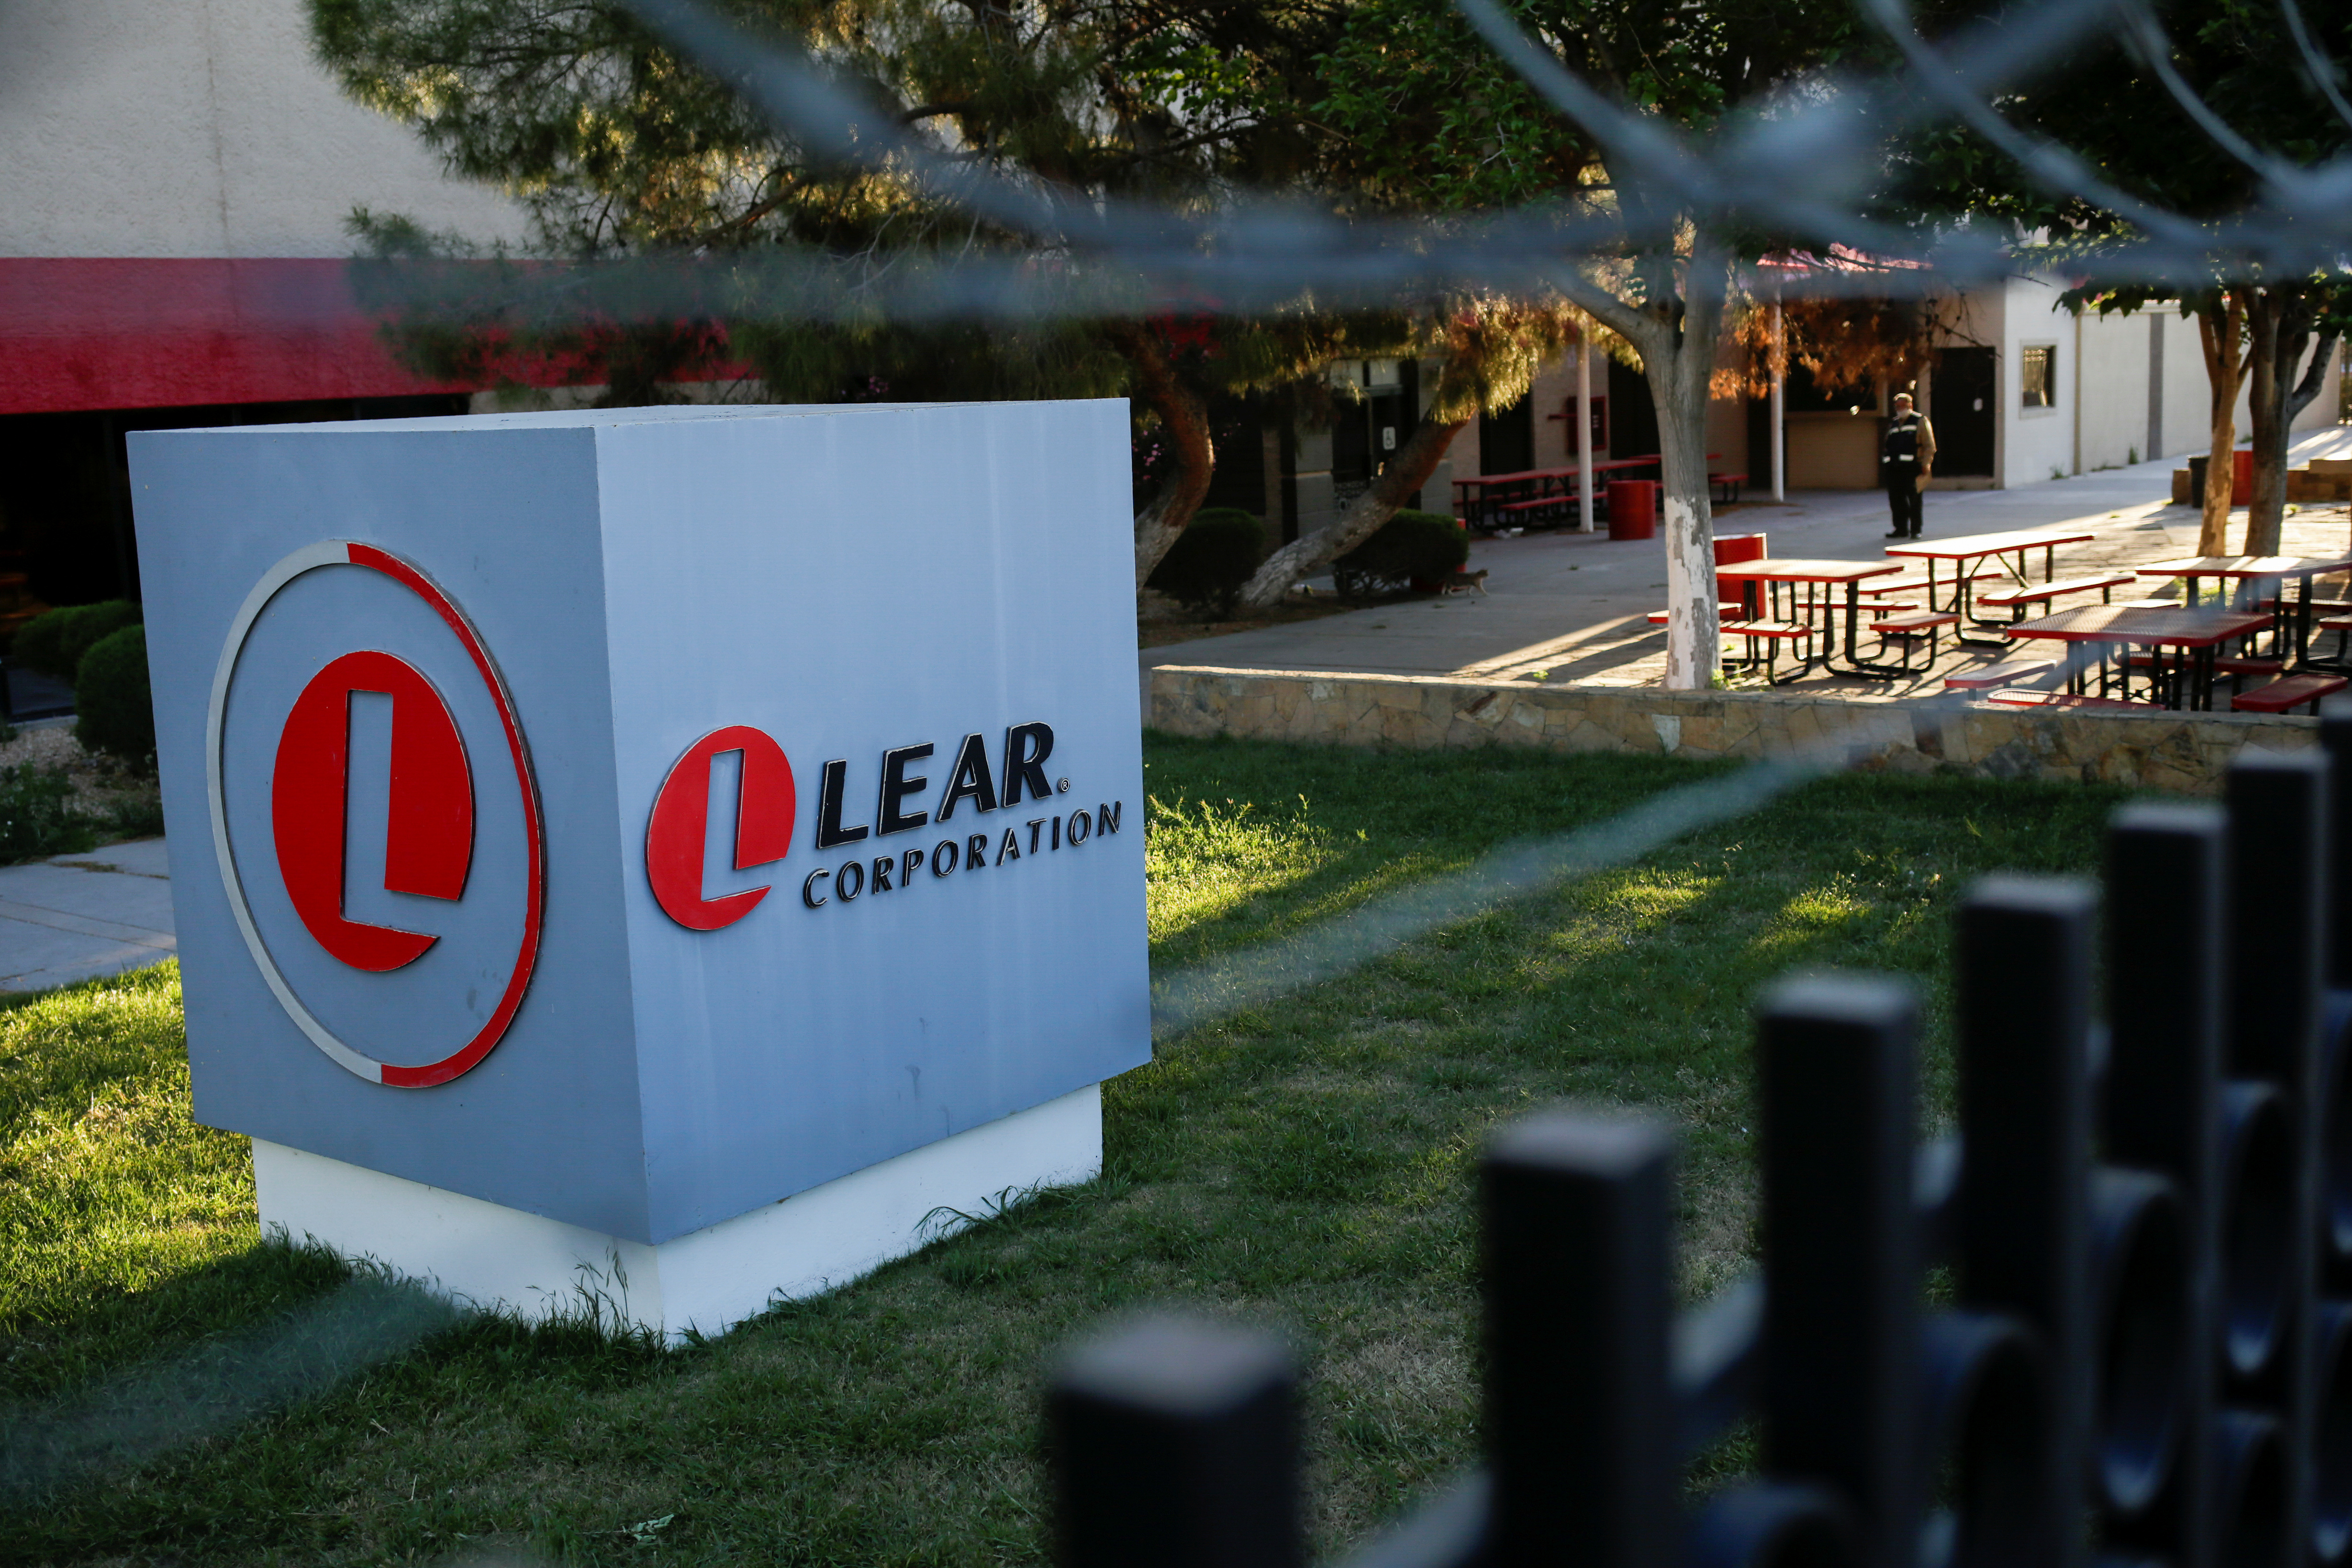 The logo of Lear Corporation, a Michigan-based car seat maker, is pictured at one of their premises during the coronavirus disease (COVID-19) outbreak, in Ciudad Juarez, Mexico April 16, 2020. REUTERS/Jose Luis Gonzalez